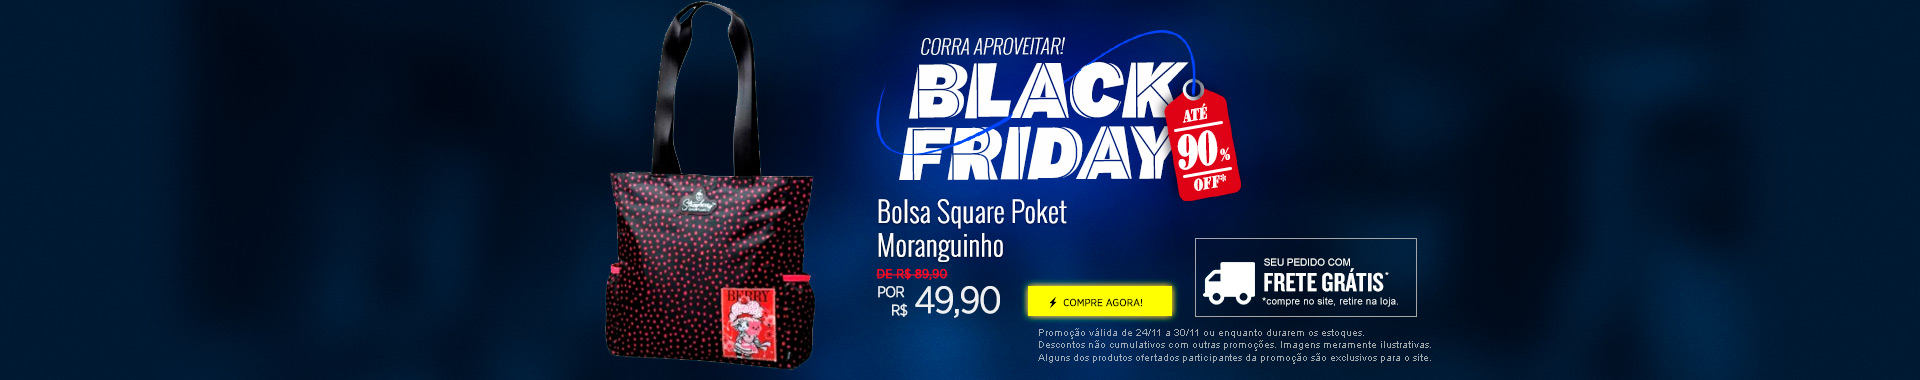 Black Friday 07